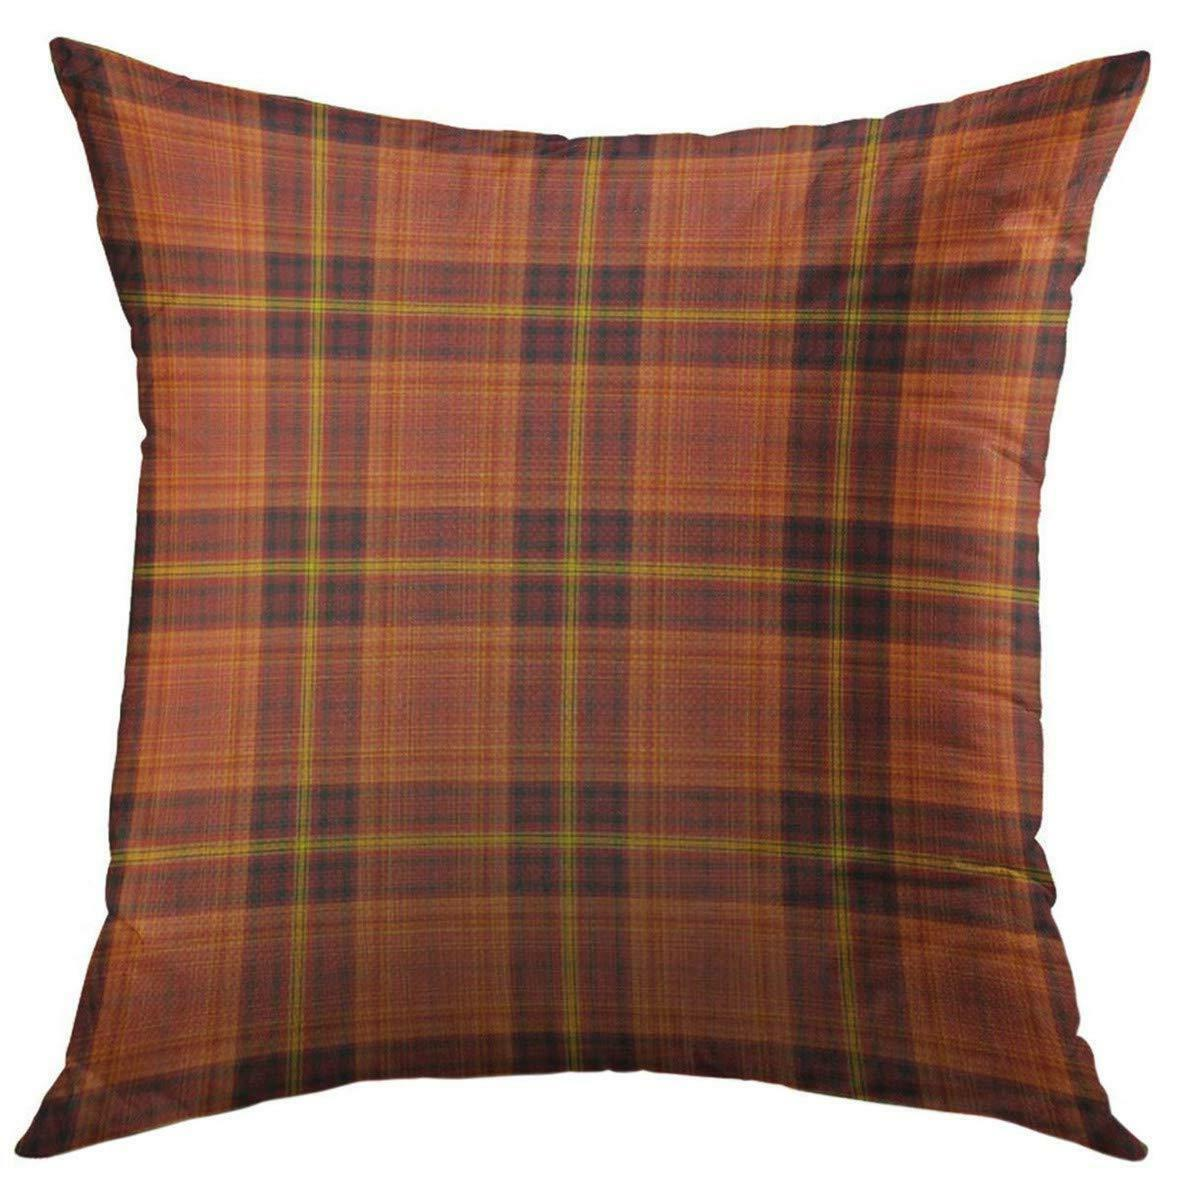 decorative throw pillow cushion cover couch sofa